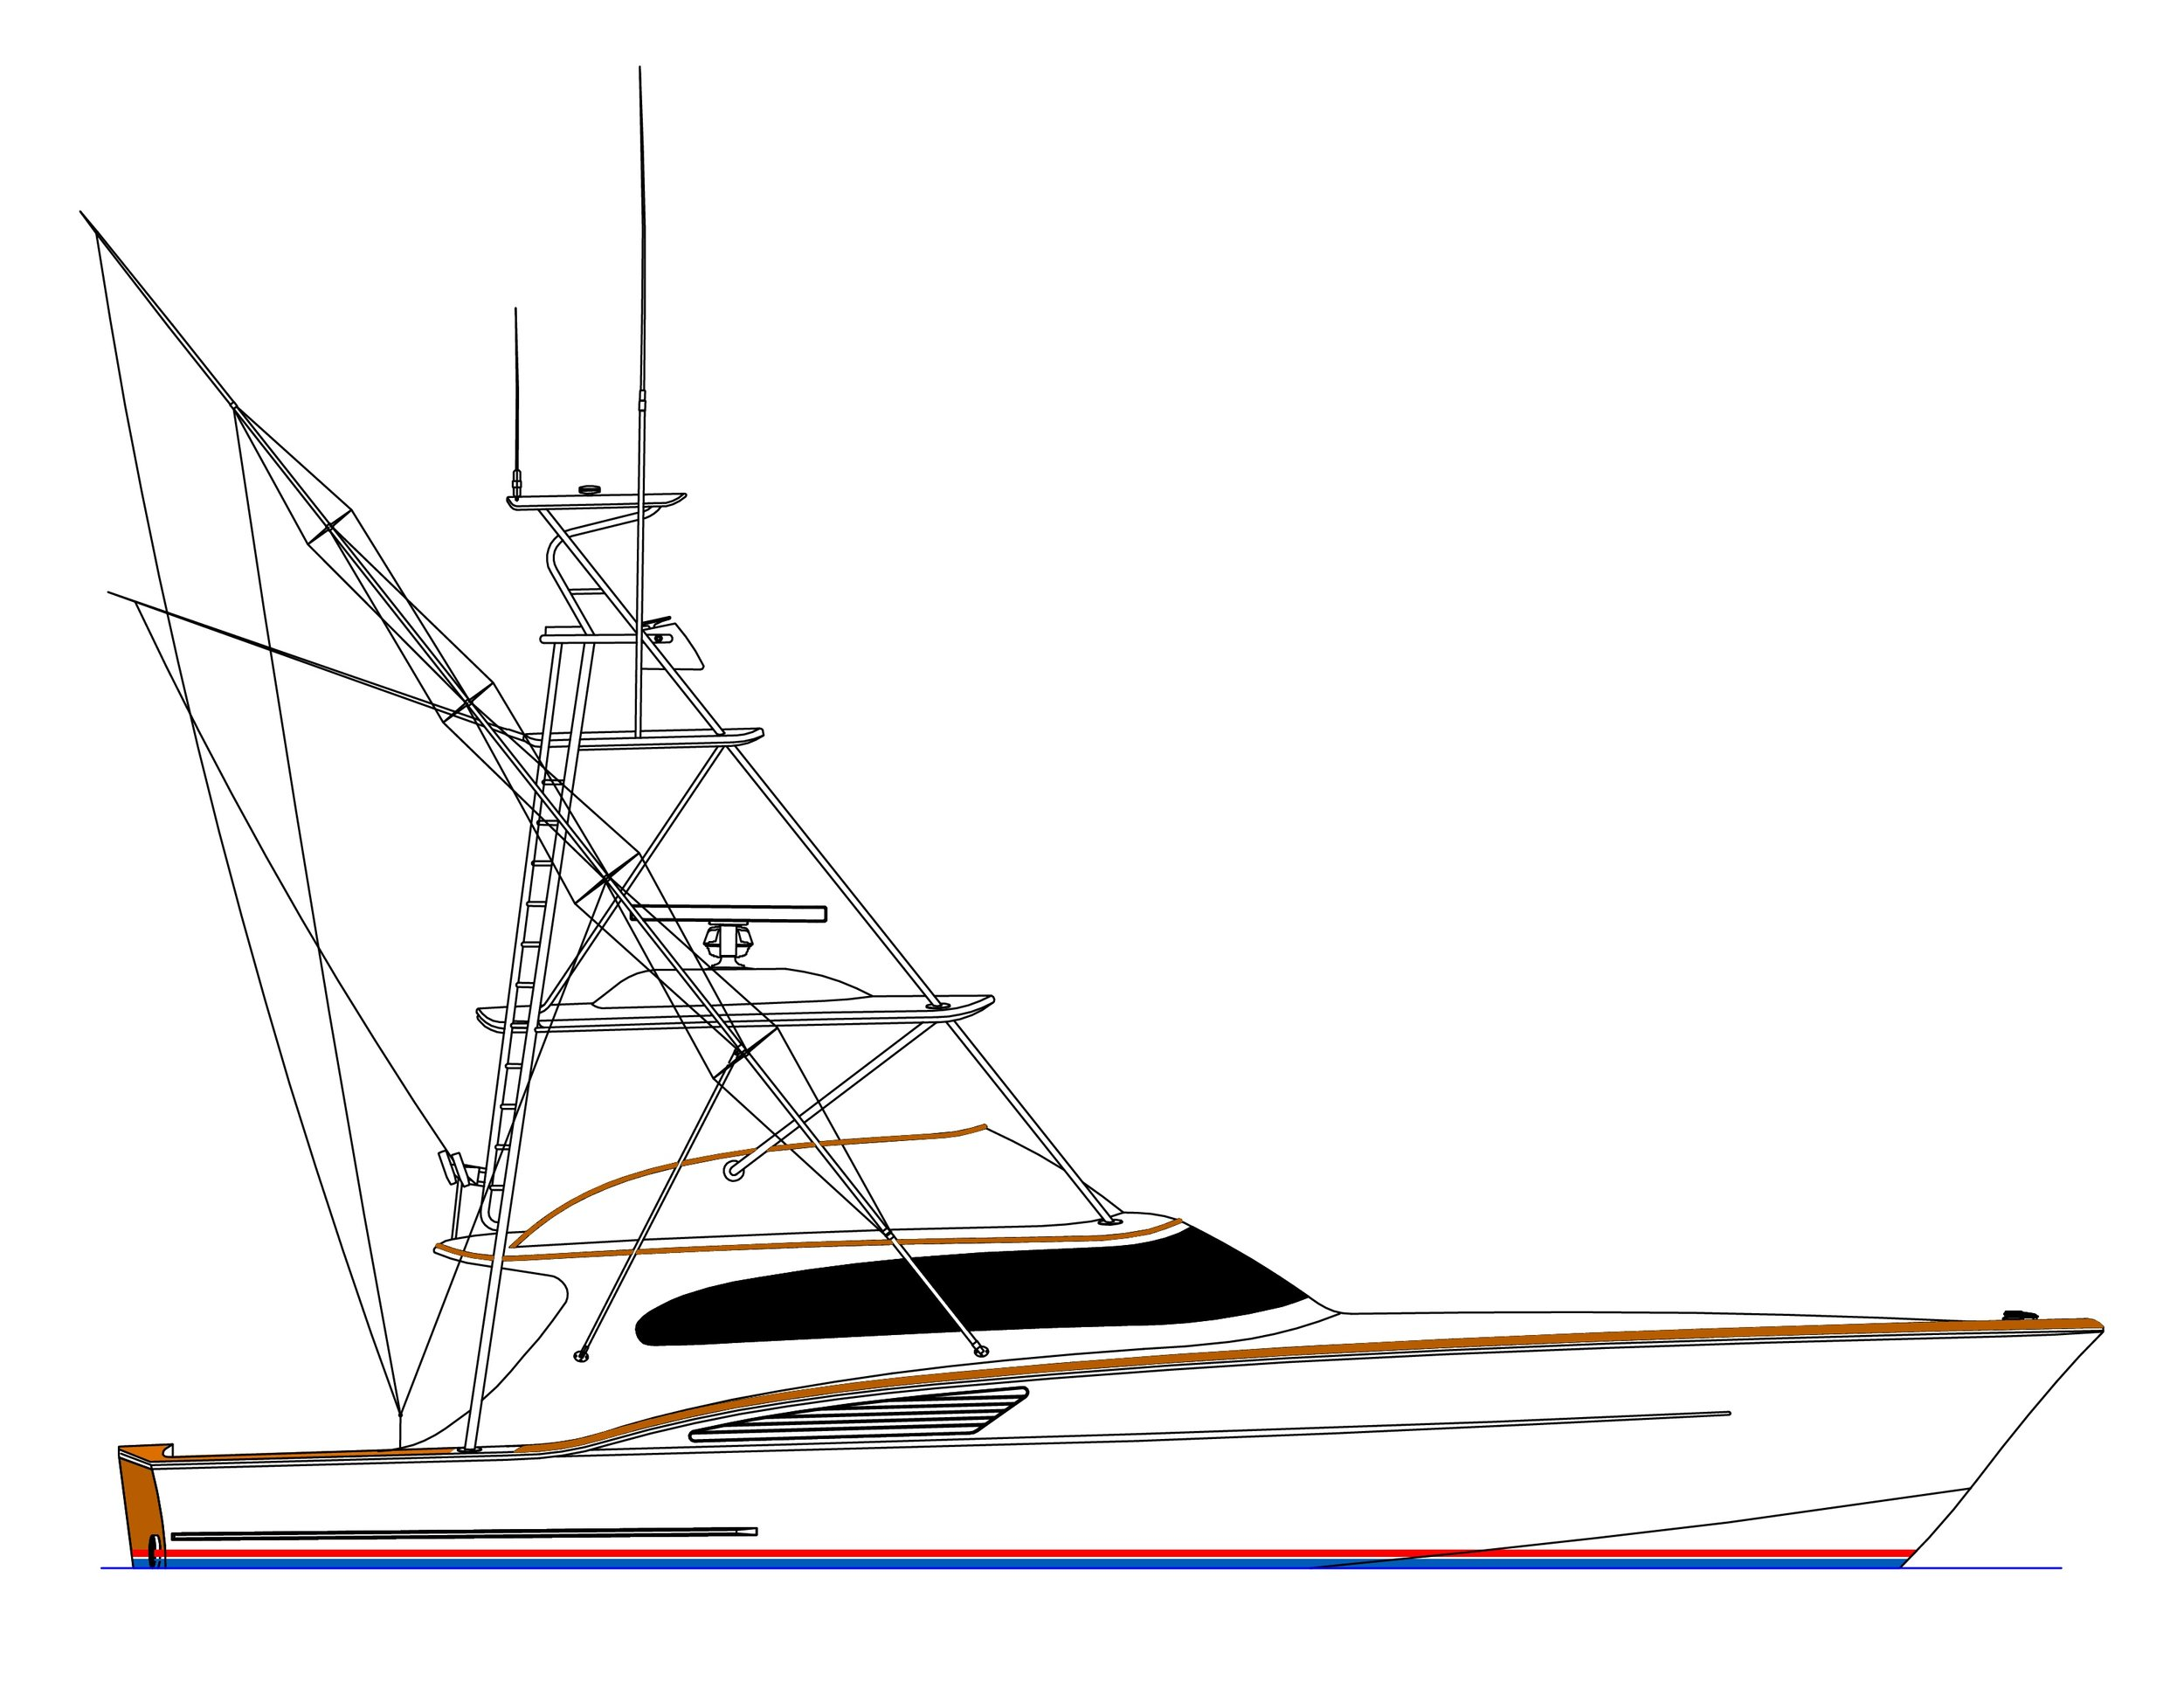 61 Garlington Flybridge profile_0001.jpg